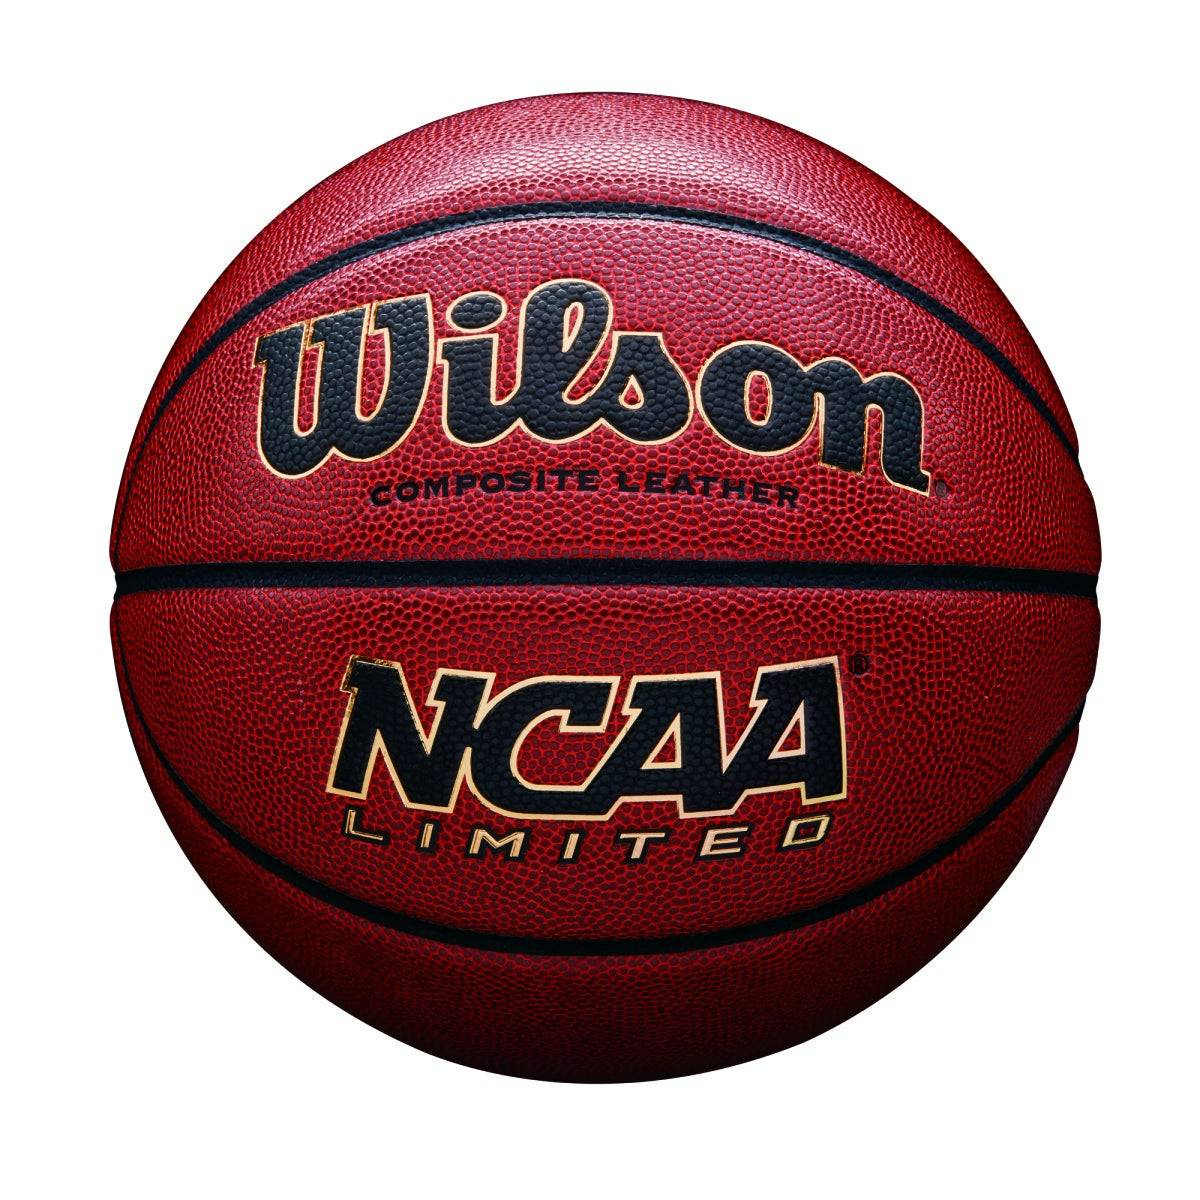 """Wilson NCAA Limited Basketball in Brown - Size: Official - 29.5""""  - Unisex - Brown - Size: Official - 29.5"""""""